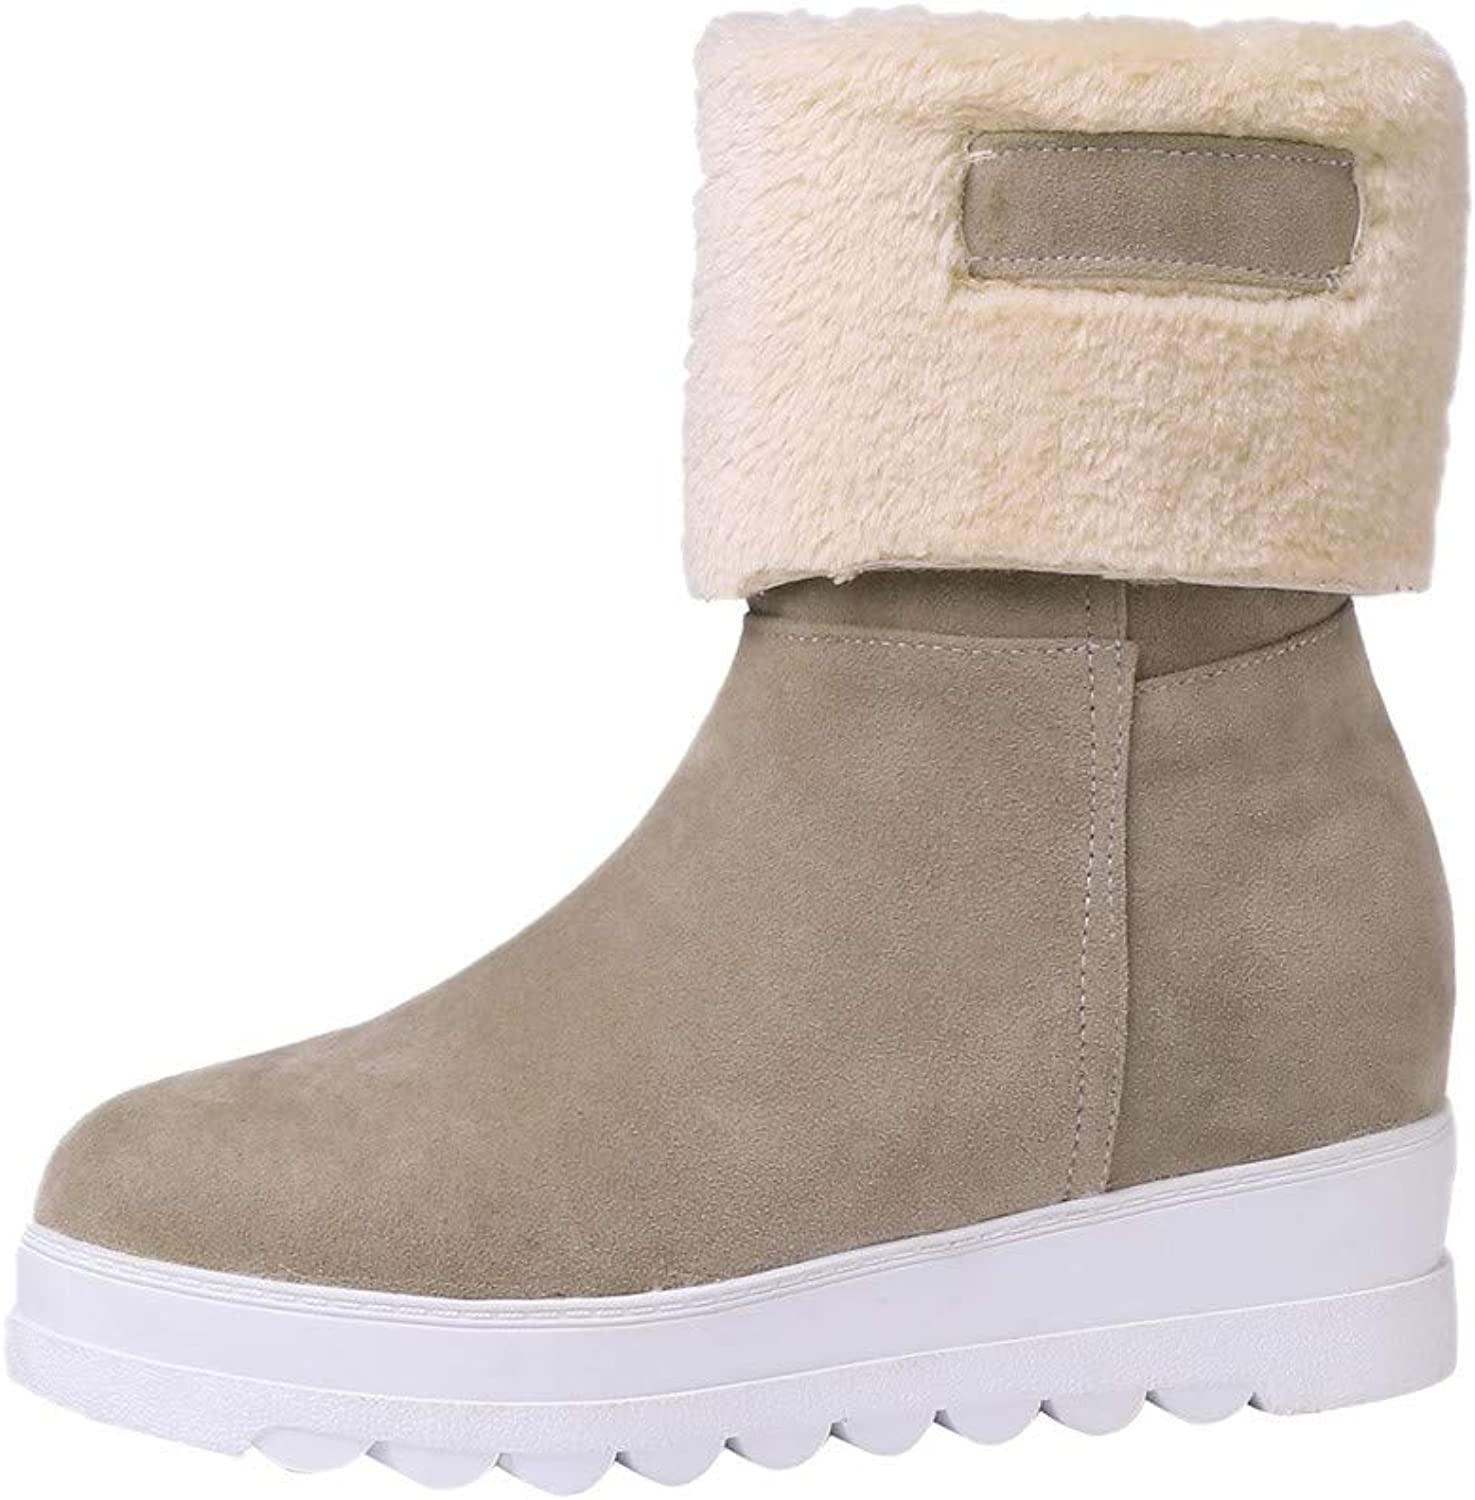 Theshy Winter Women Suede Round Toe Wedges shoes Keep Warm Slip-On Plush Snow Boots